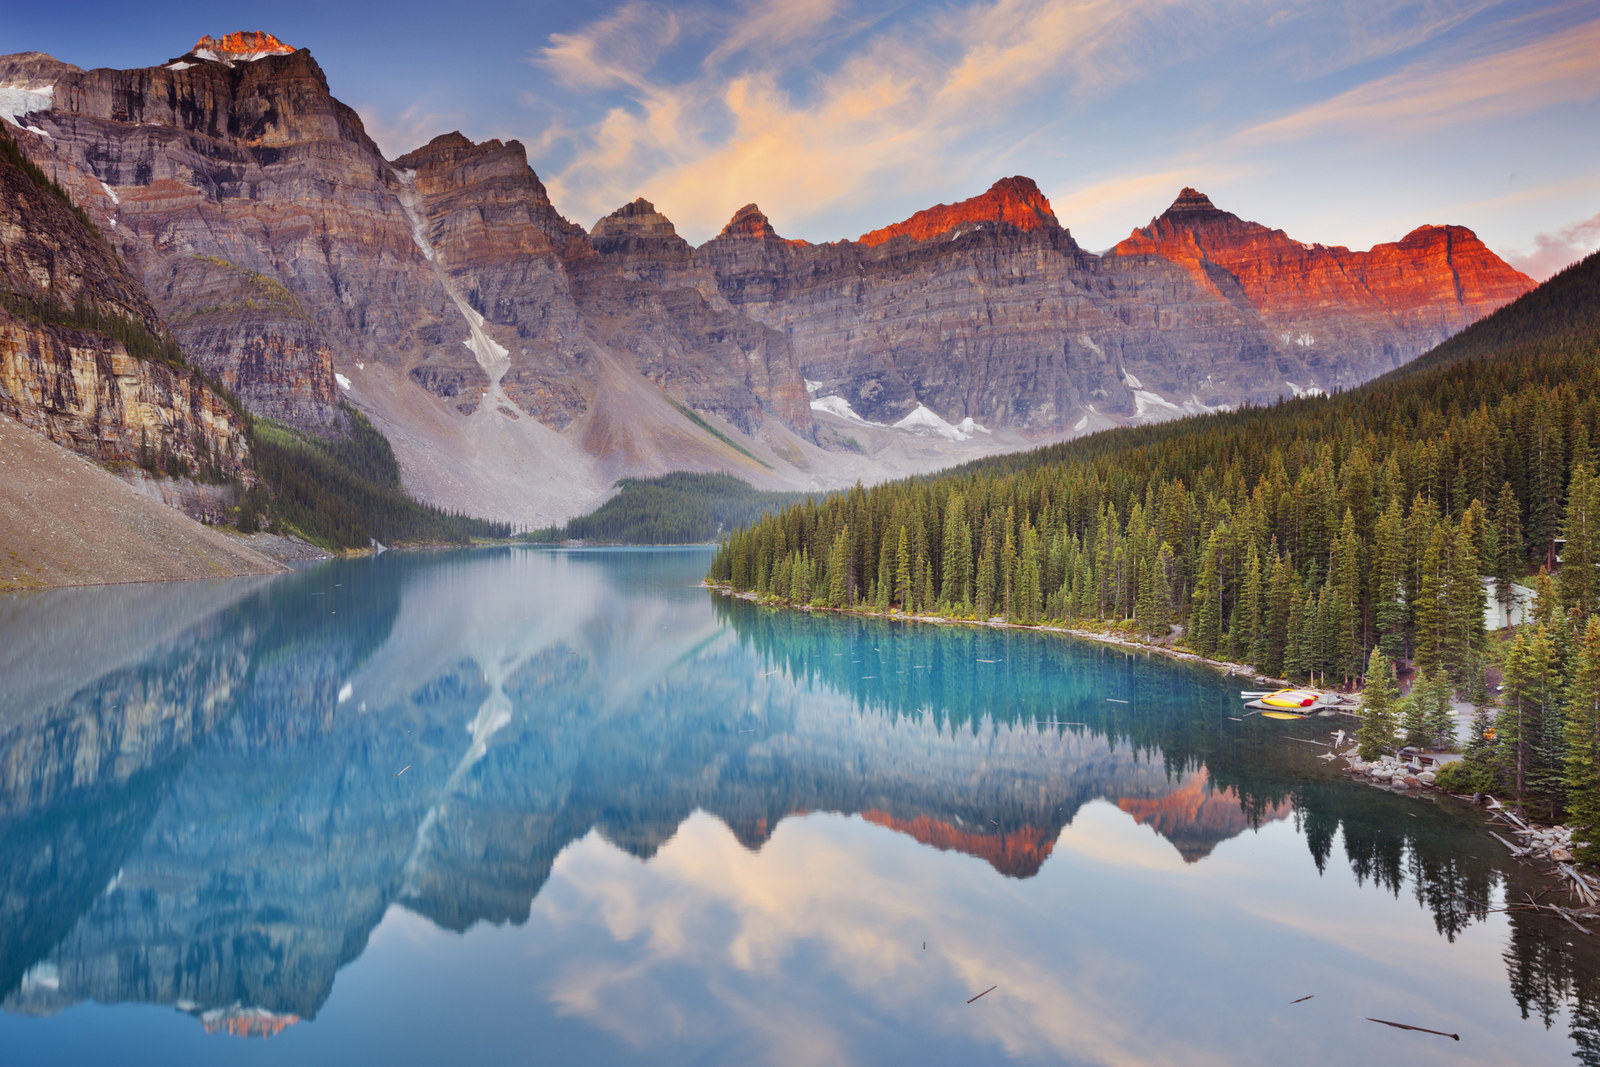 Canada: Banff National Park -  Banff, Canada's oldest national park, is nestled in the Canadian Rockies in Alberta. Doesn't that jade blue glacial lake make you feel some type of way?